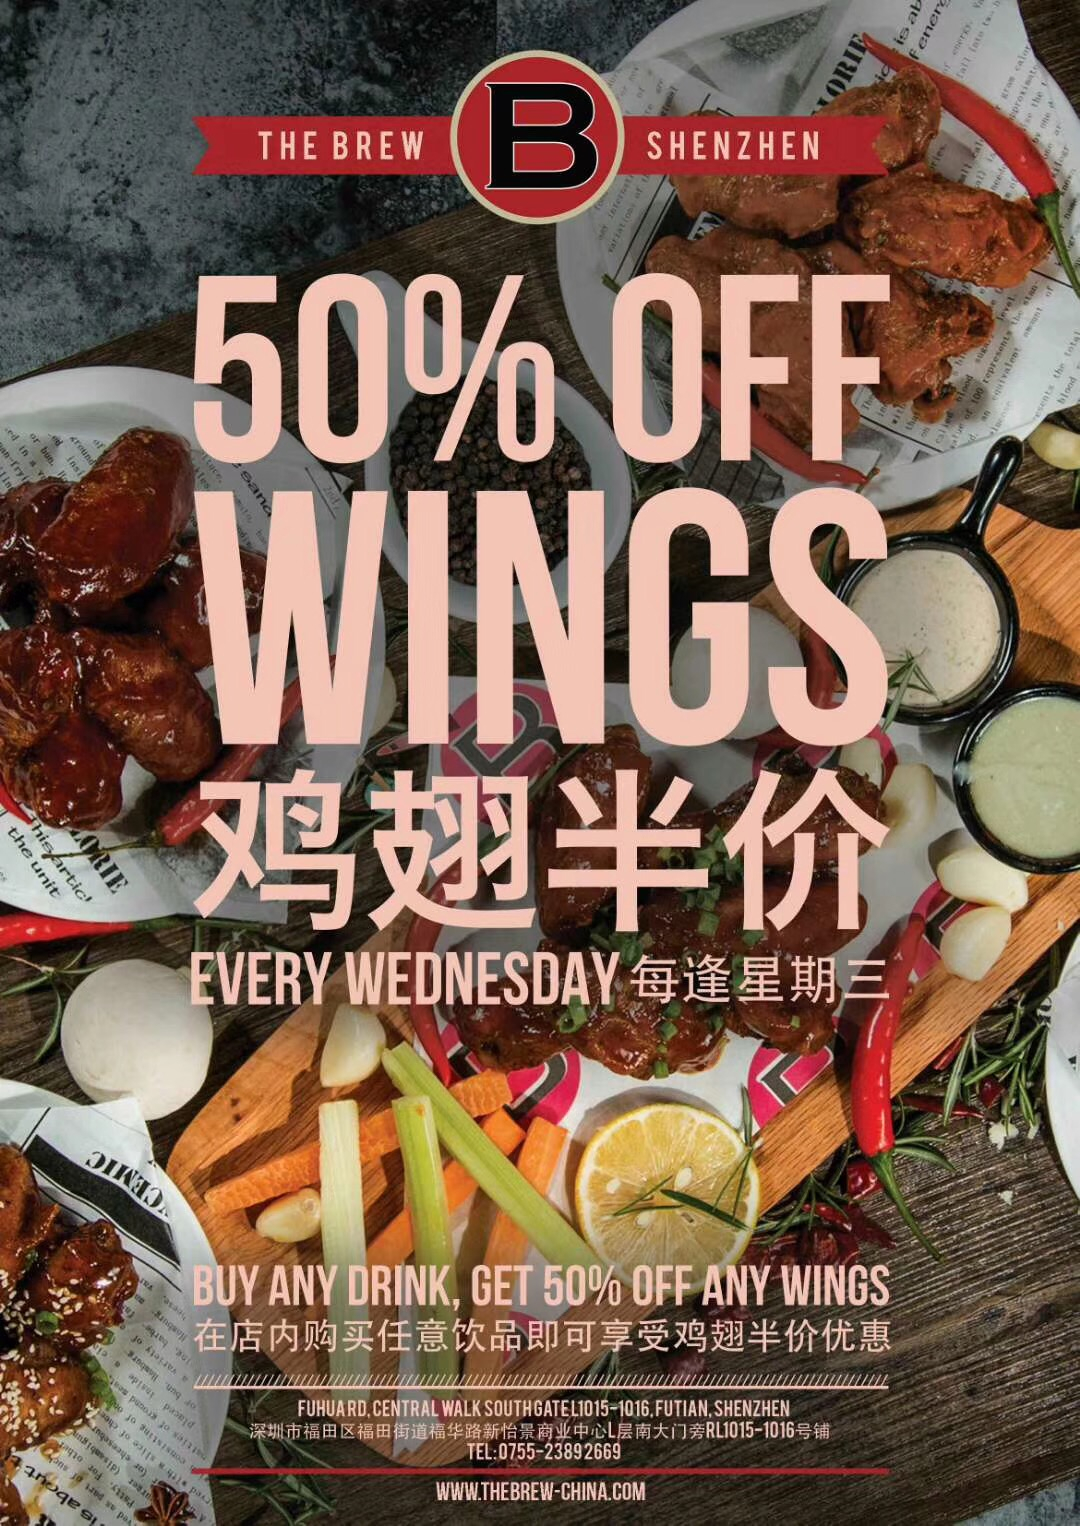 【The Brew】50% OFF WINGS